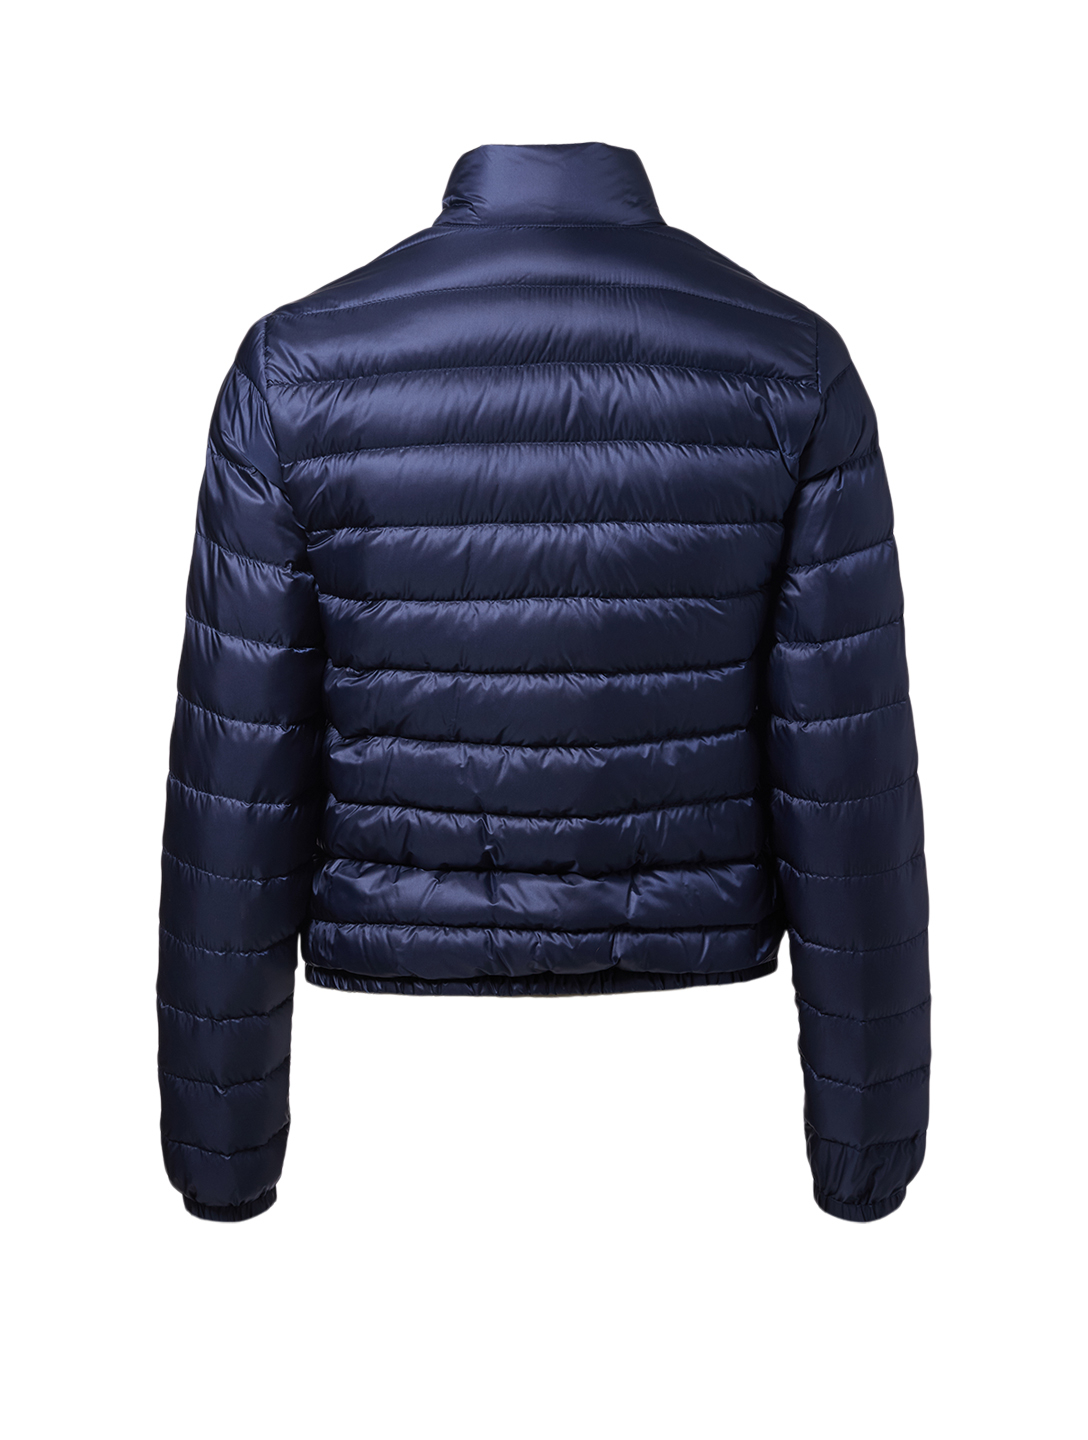 MONCLER Lans Down Puffer Jacket Women's Blue